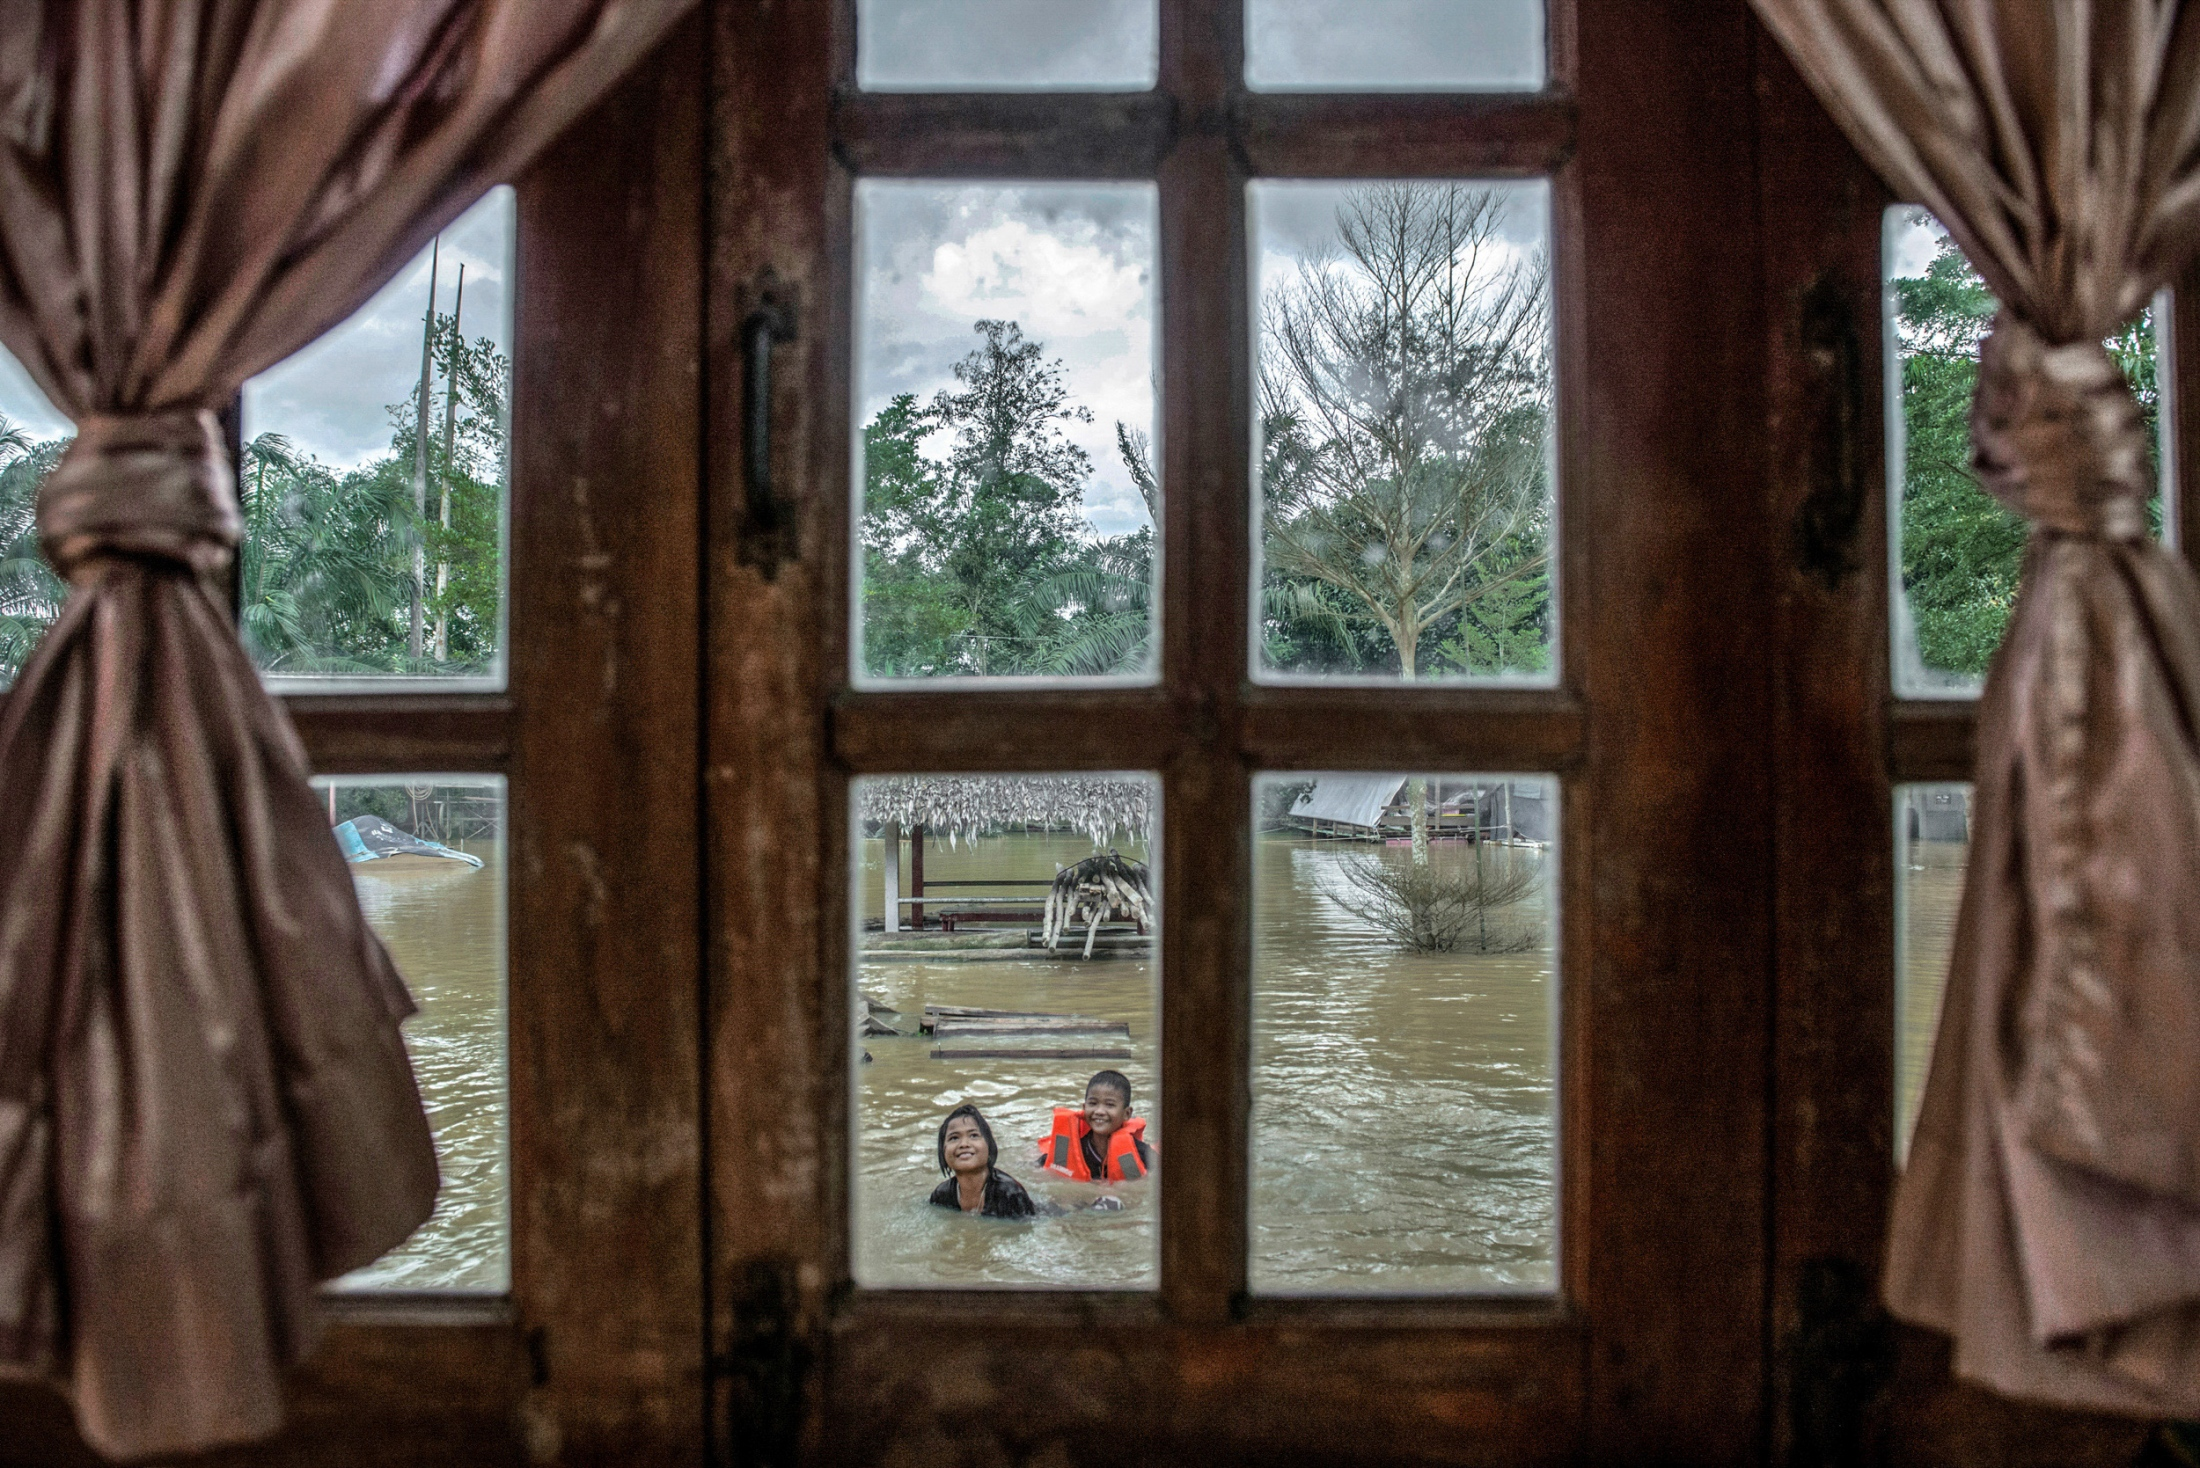 Many homes have been flooded for many weeks from the unseasonably heavy rainfall in Southern Thailand. The backyard has turned into a large flooded swamp. Surat Thani, Thailand- January 18, 2017.